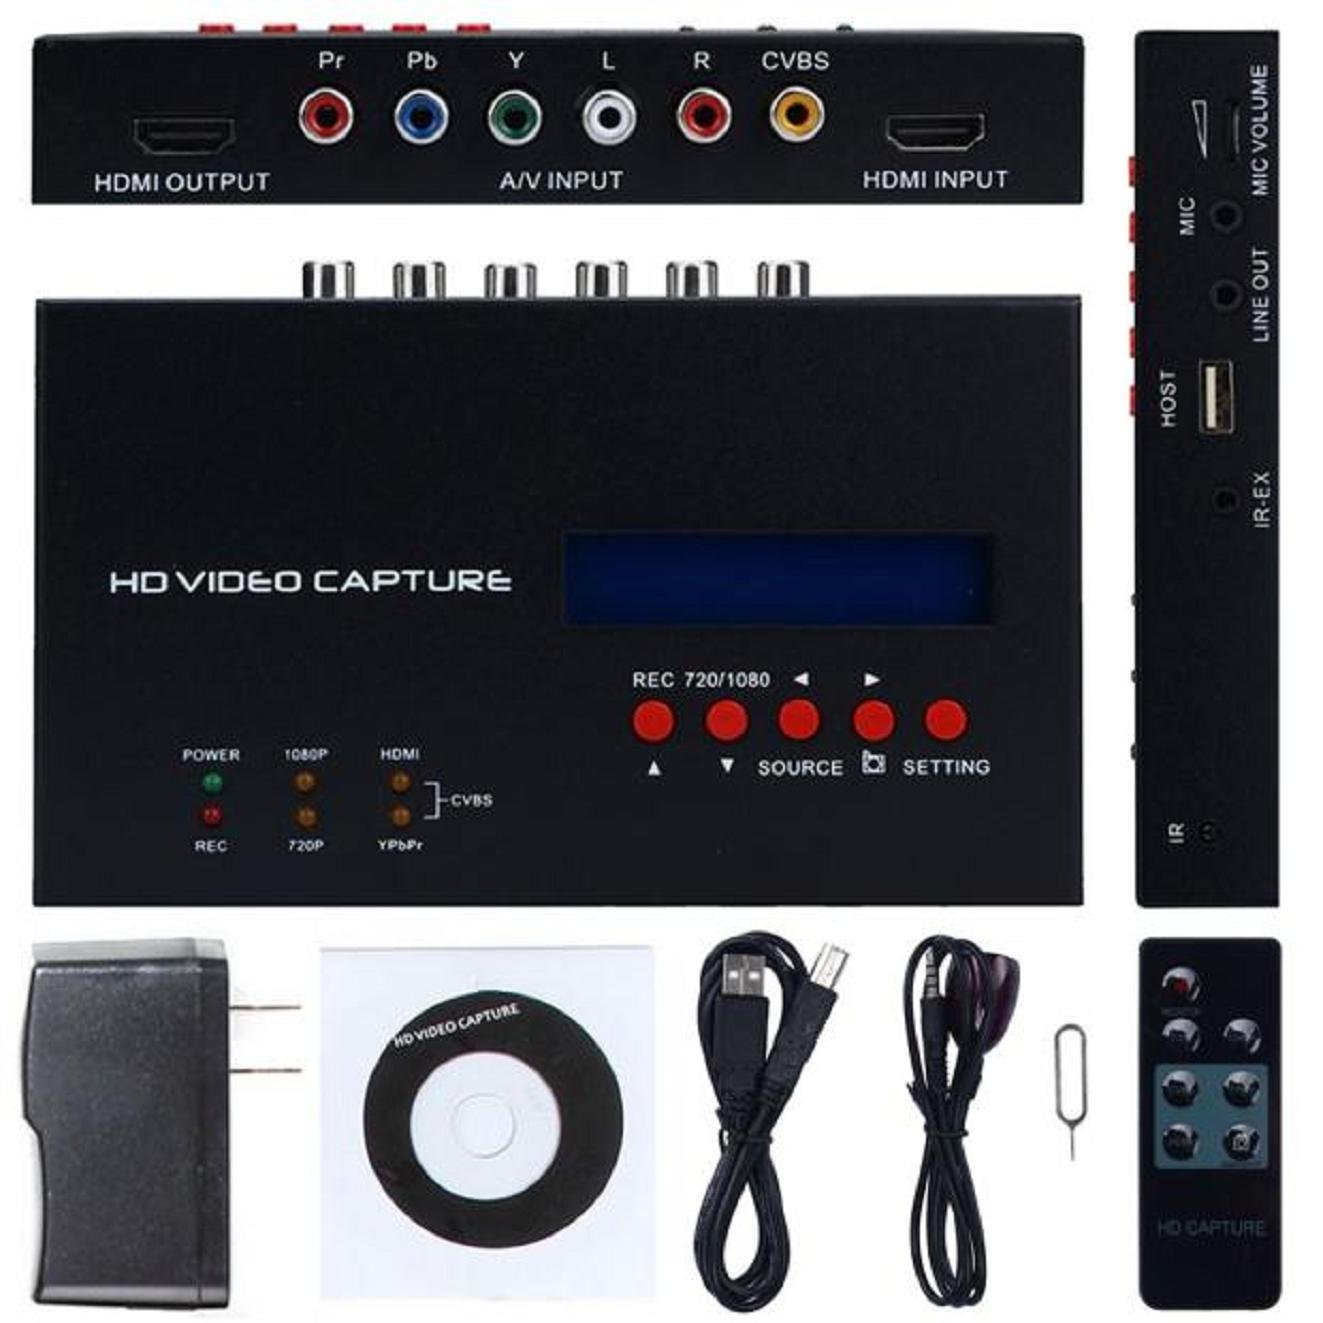 ABCsell Game Video Capture Box HD HDMI 1080P Recorder Device for XBox 360 One PS4 PS3 by abcsell (Image #1)